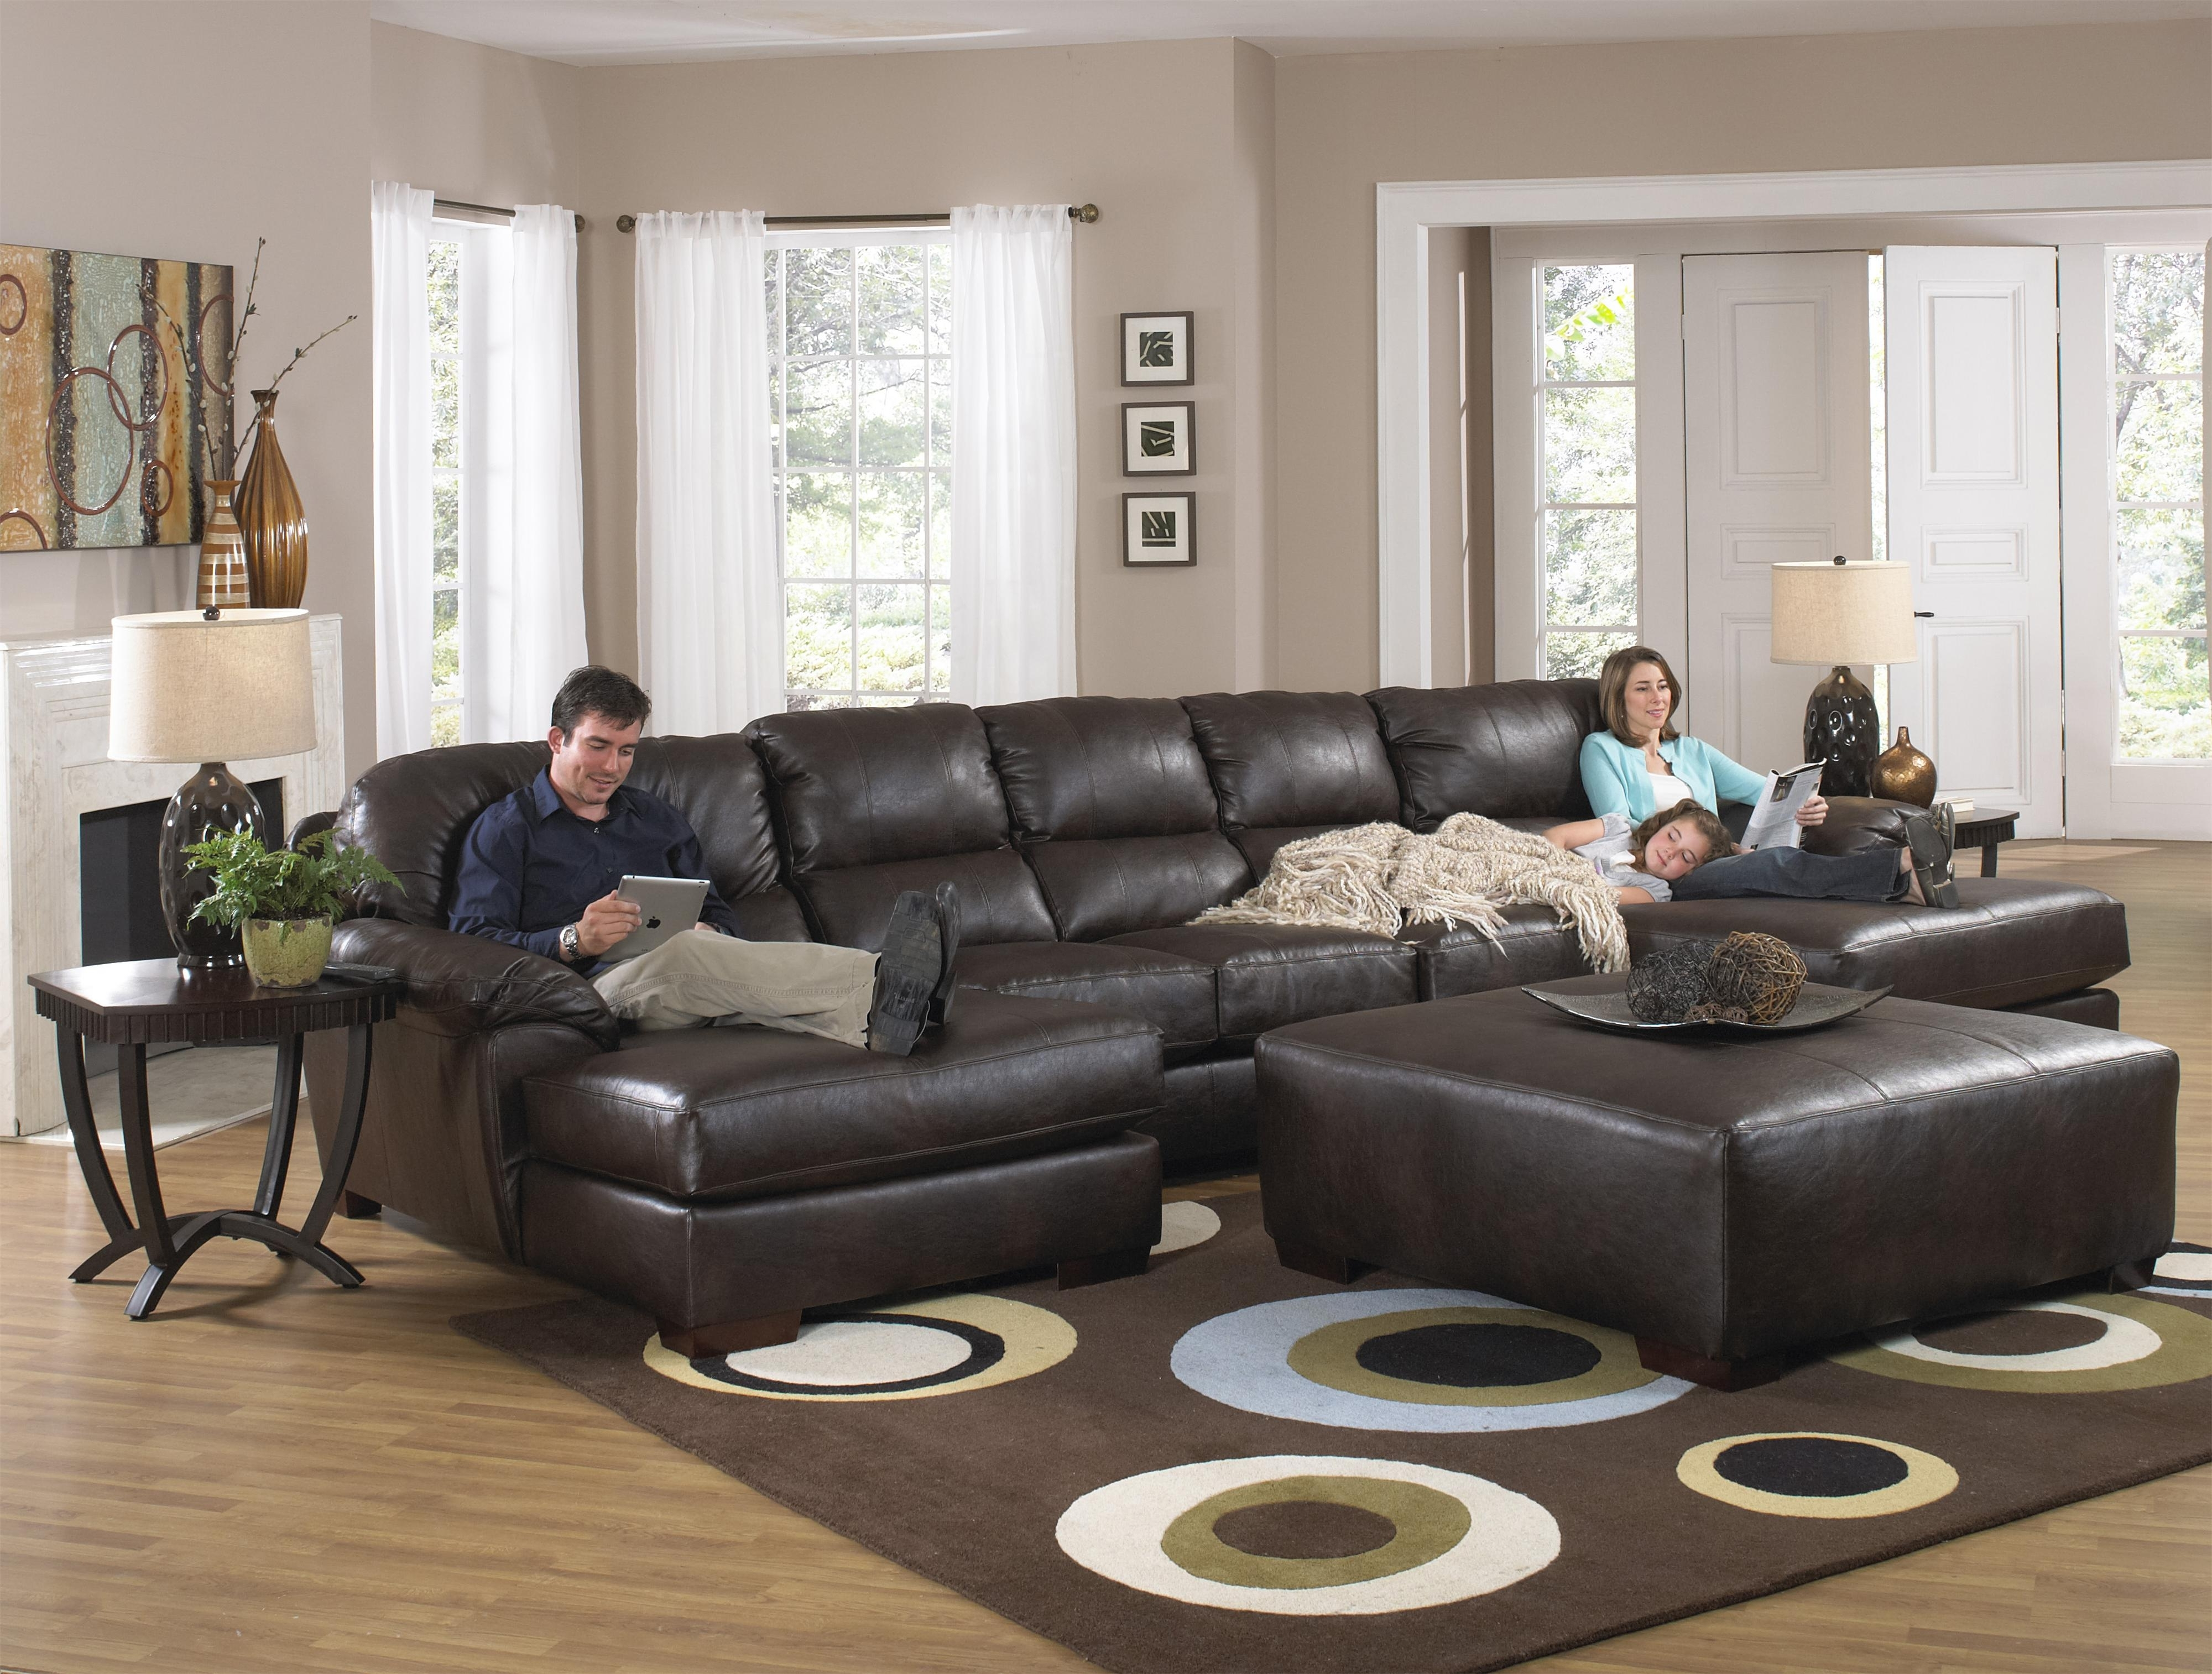 Two Chaise Sectional Sofa With Five Total Seatsjackson For Widely Used 2 Piece Sectionals With Chaise Lounge (View 11 of 15)